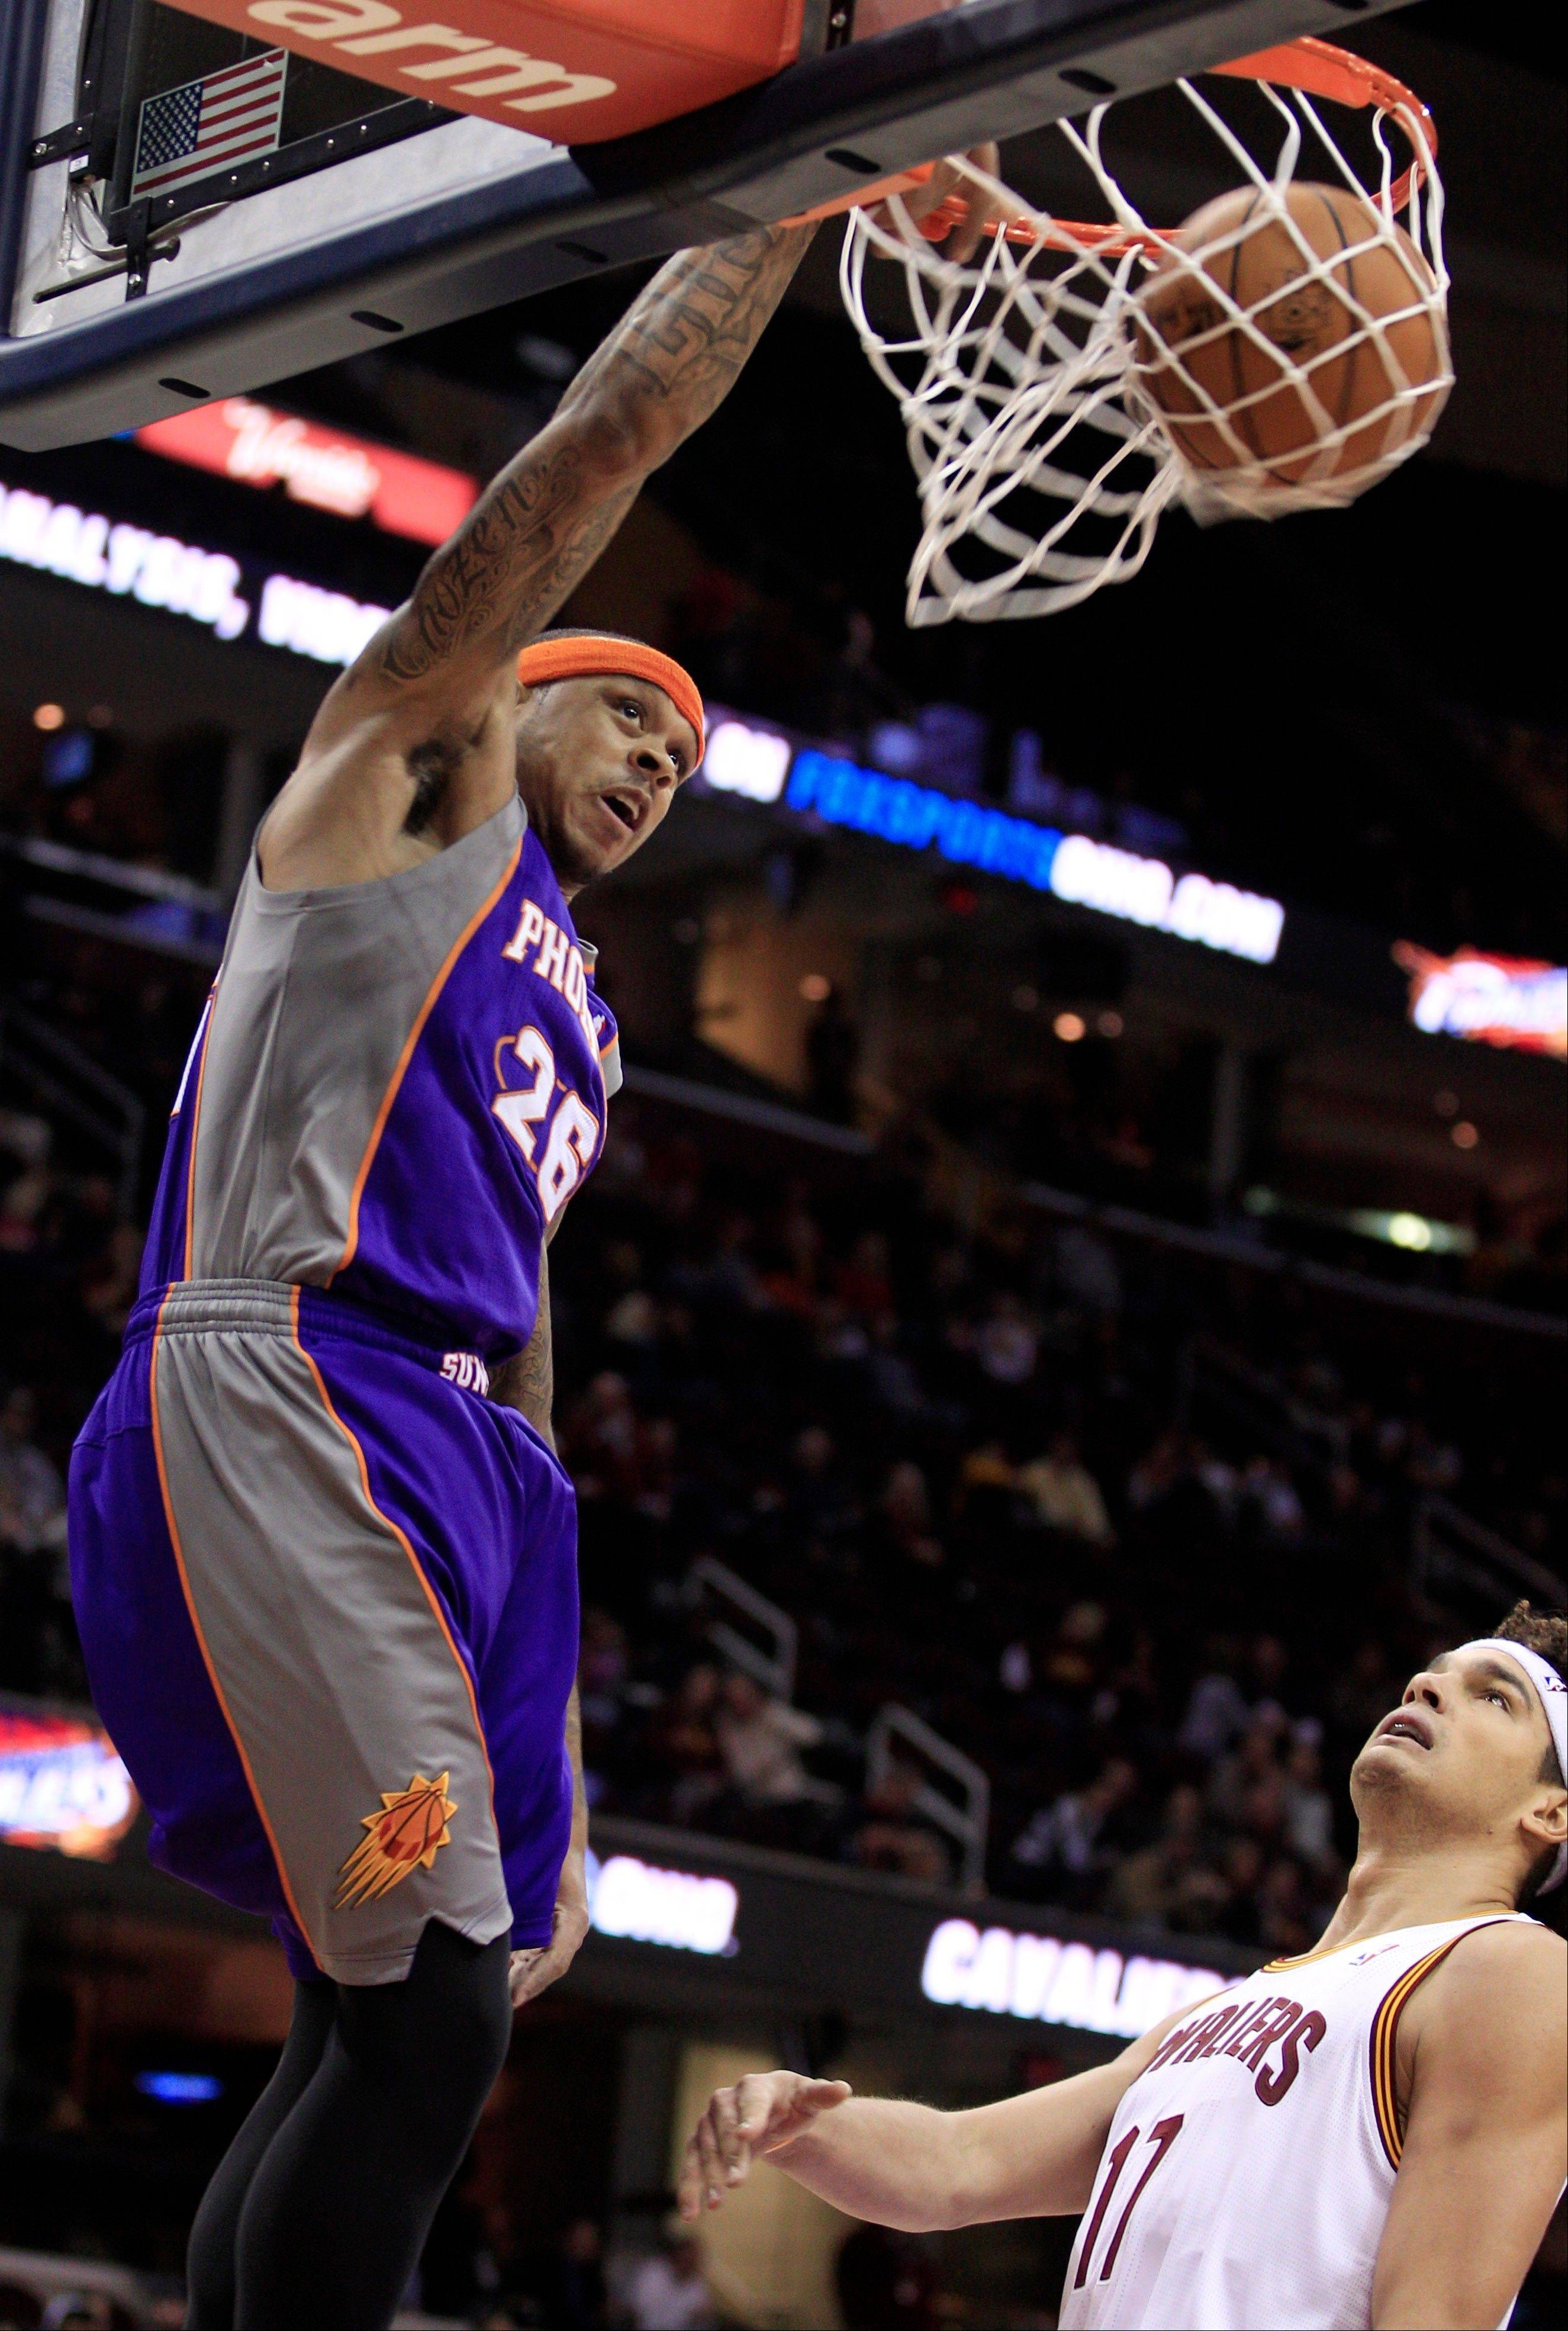 The Phoenix Suns� Shannon Brown dunks in front of the Cleveland Cavaliers� Anderson Varejao Tuesday during the first quarter in Cleveland.